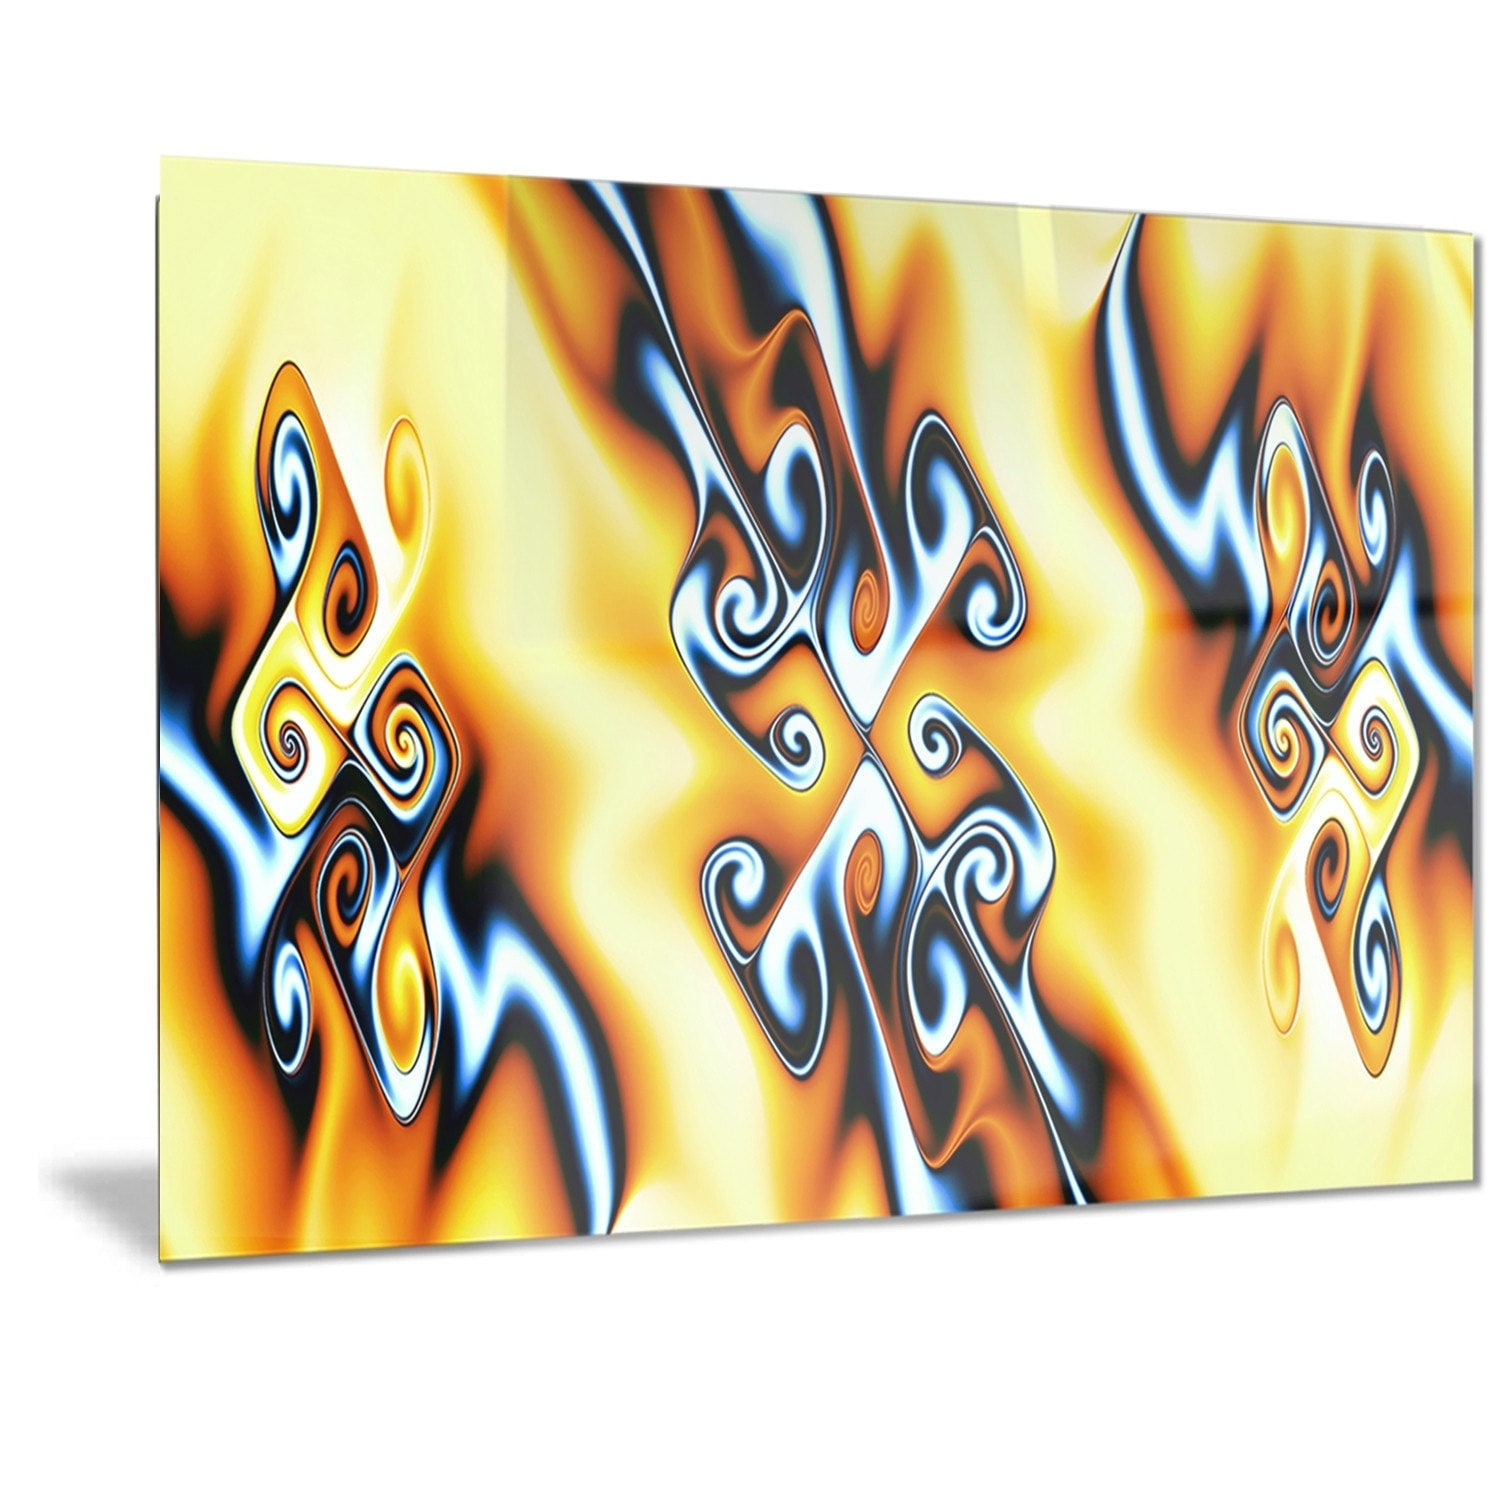 Amazing Southwest Metal Wall Art Images - The Wall Art Decorations ...